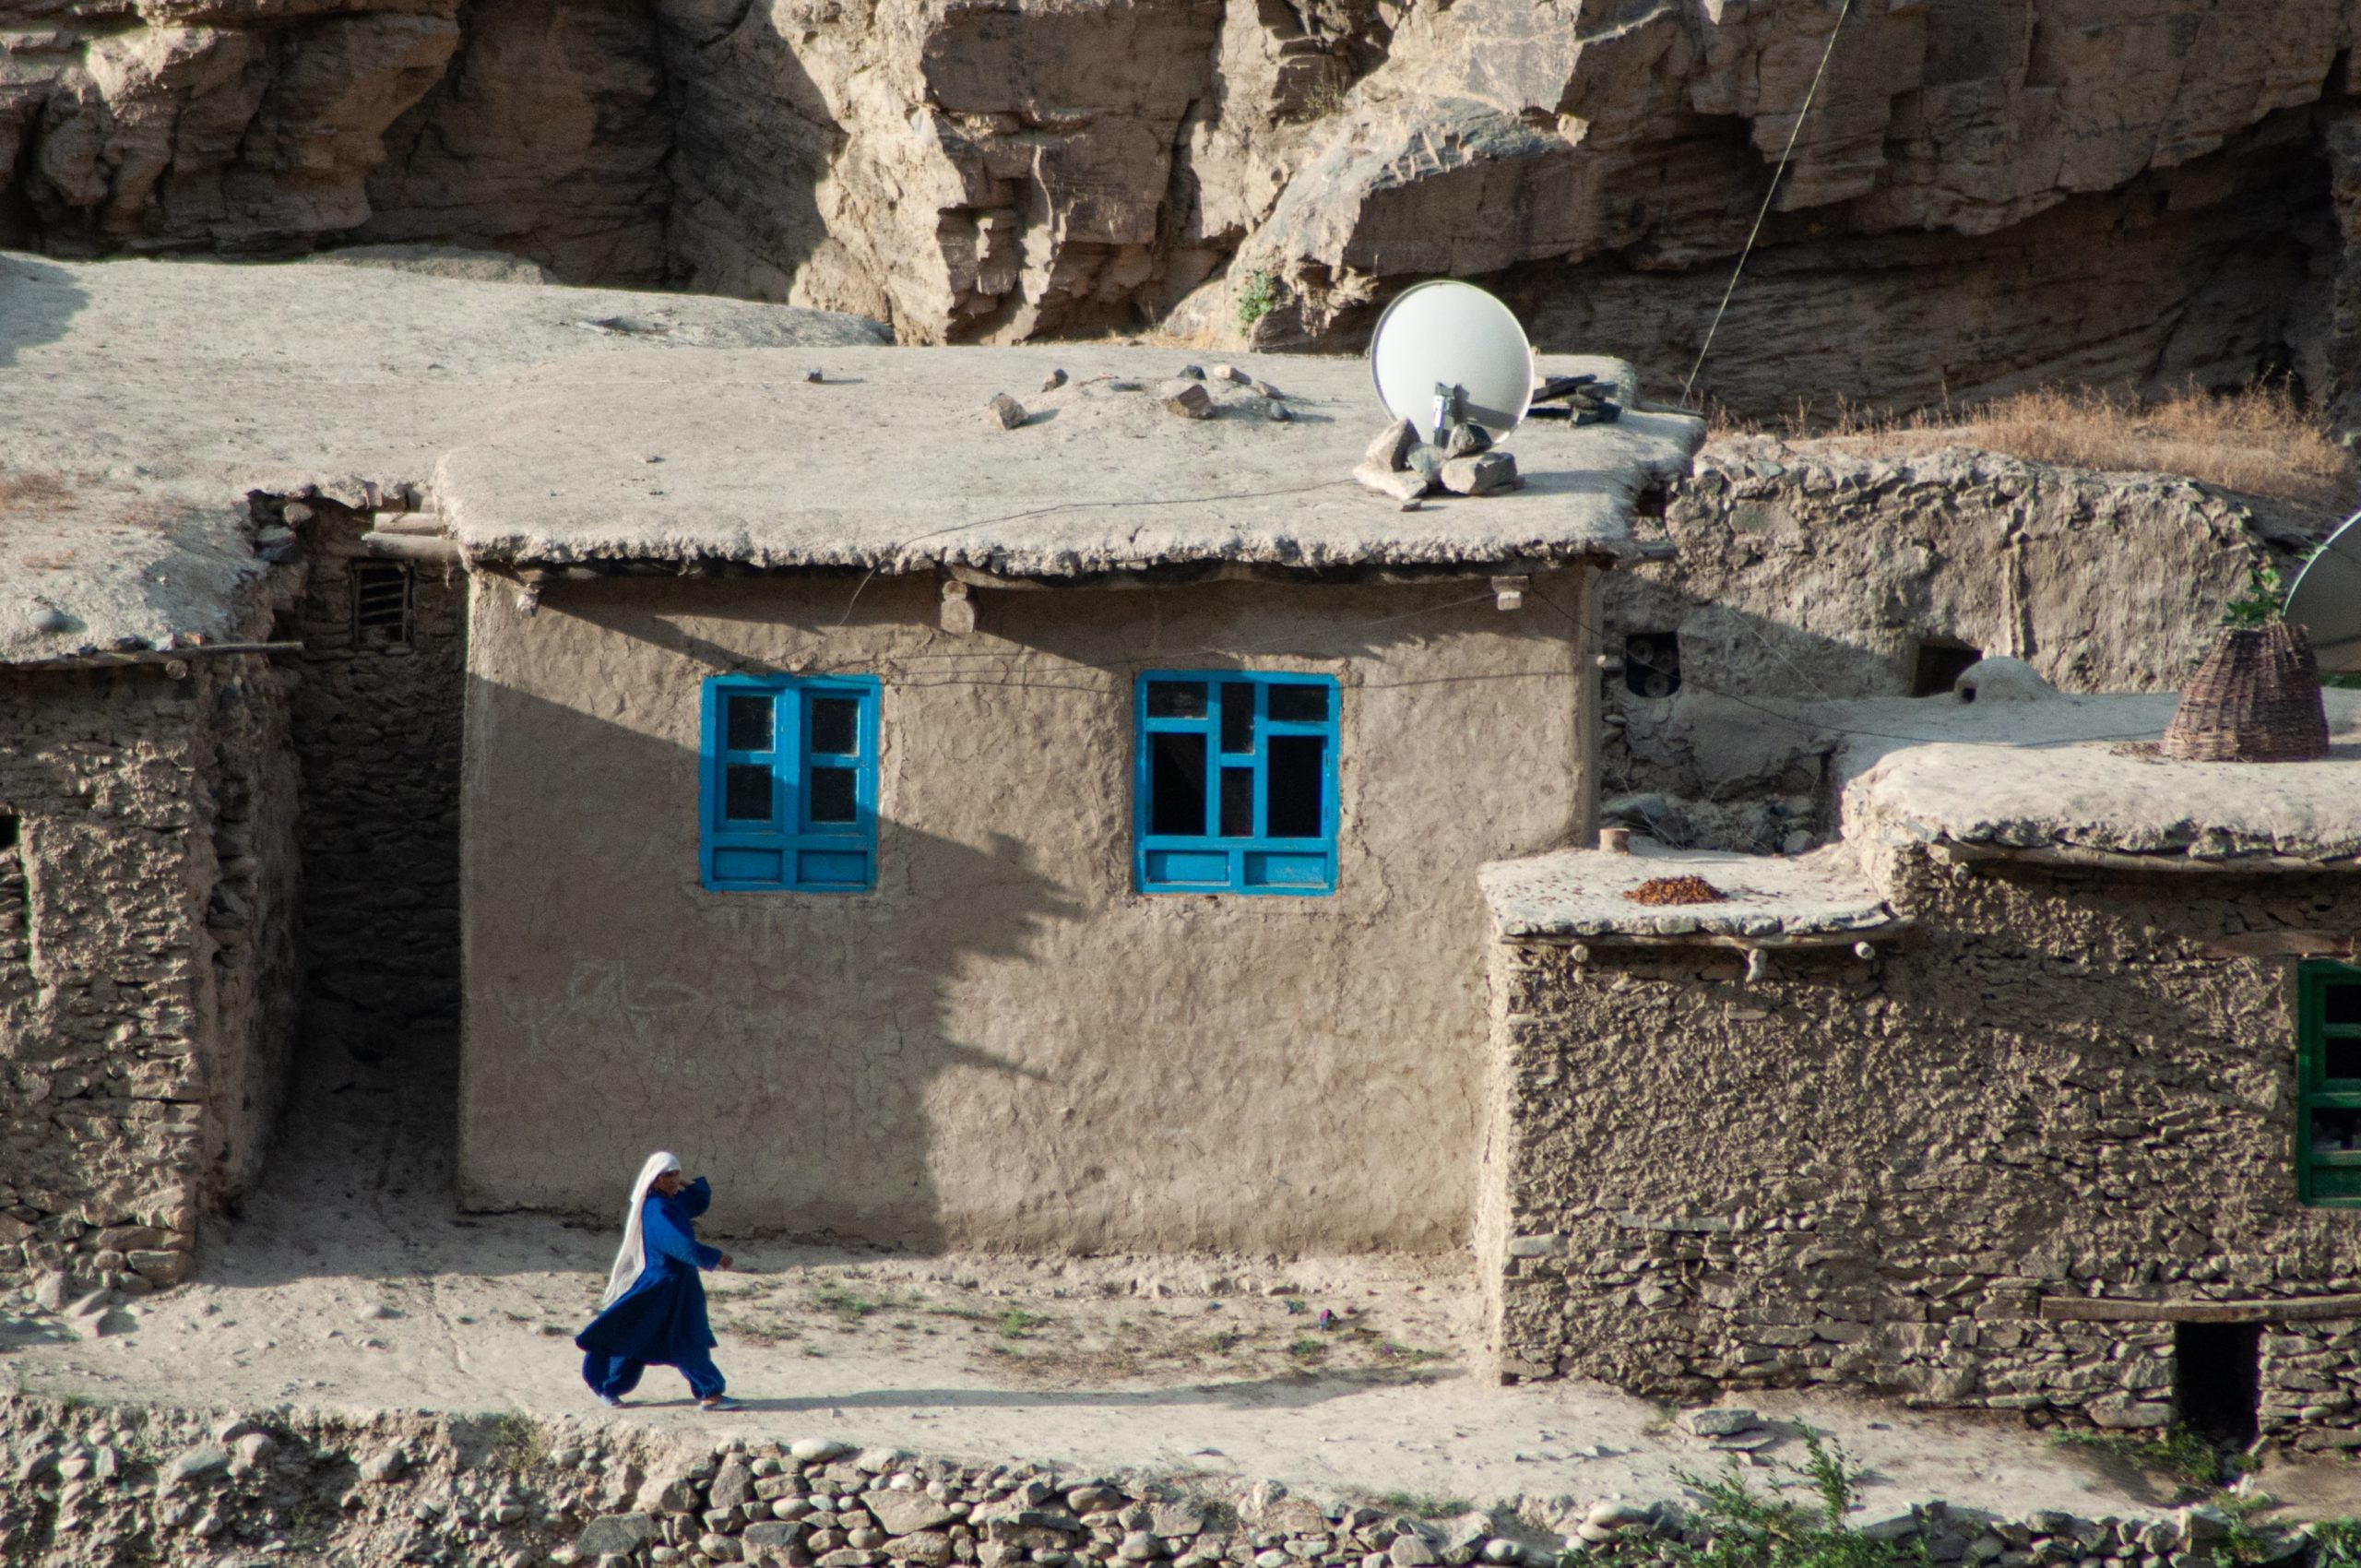 Afghan women, serial wars and imperial violence